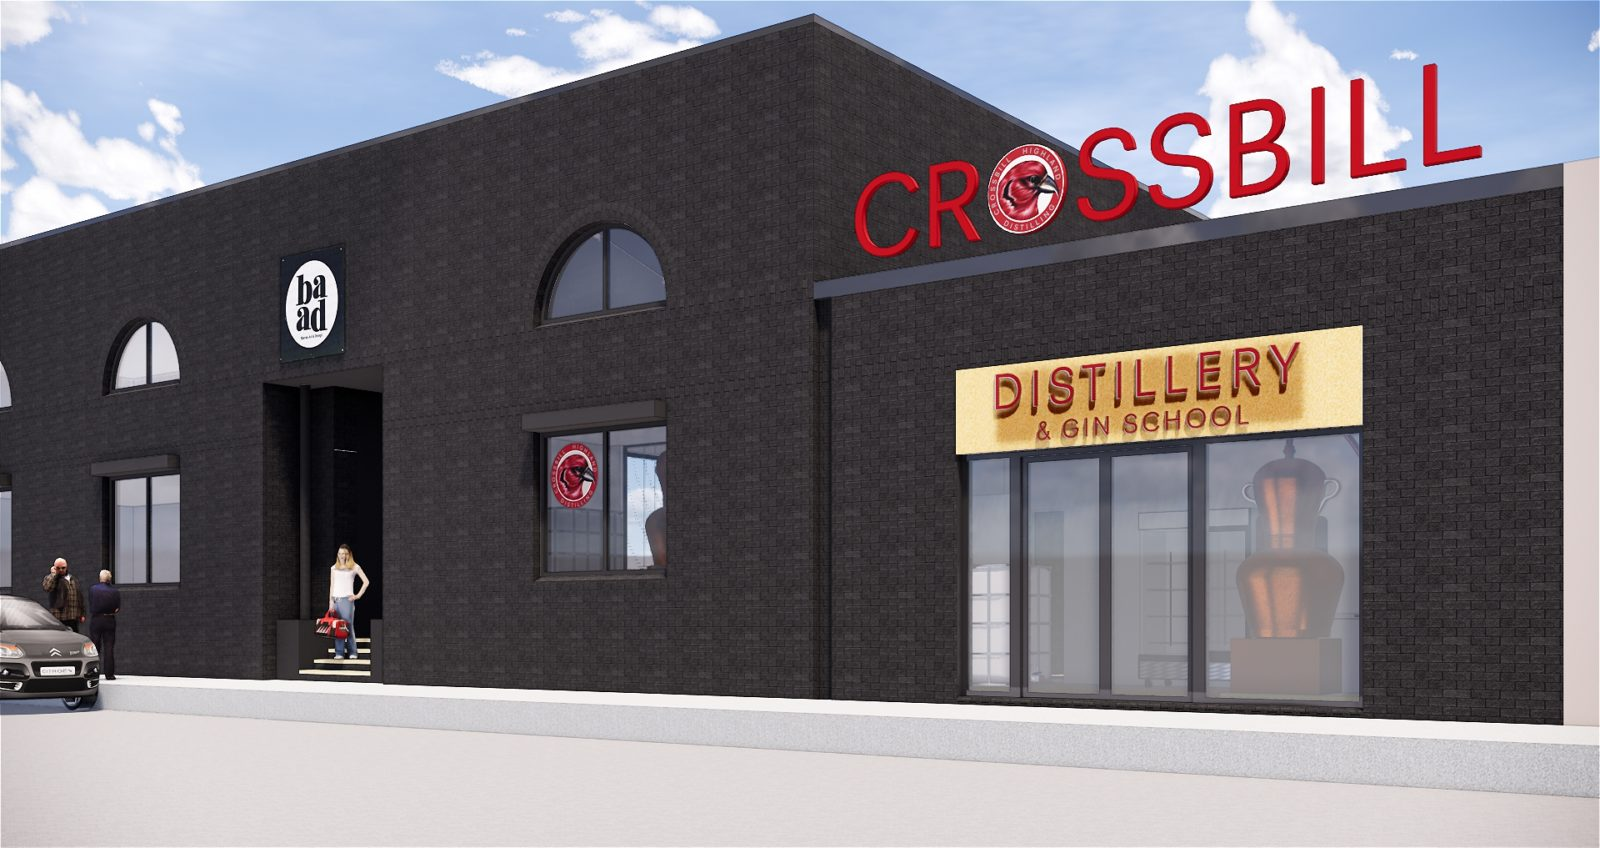 Glasgow Based Distillery And Gin School Crossbill Announces Plans To Expand photo